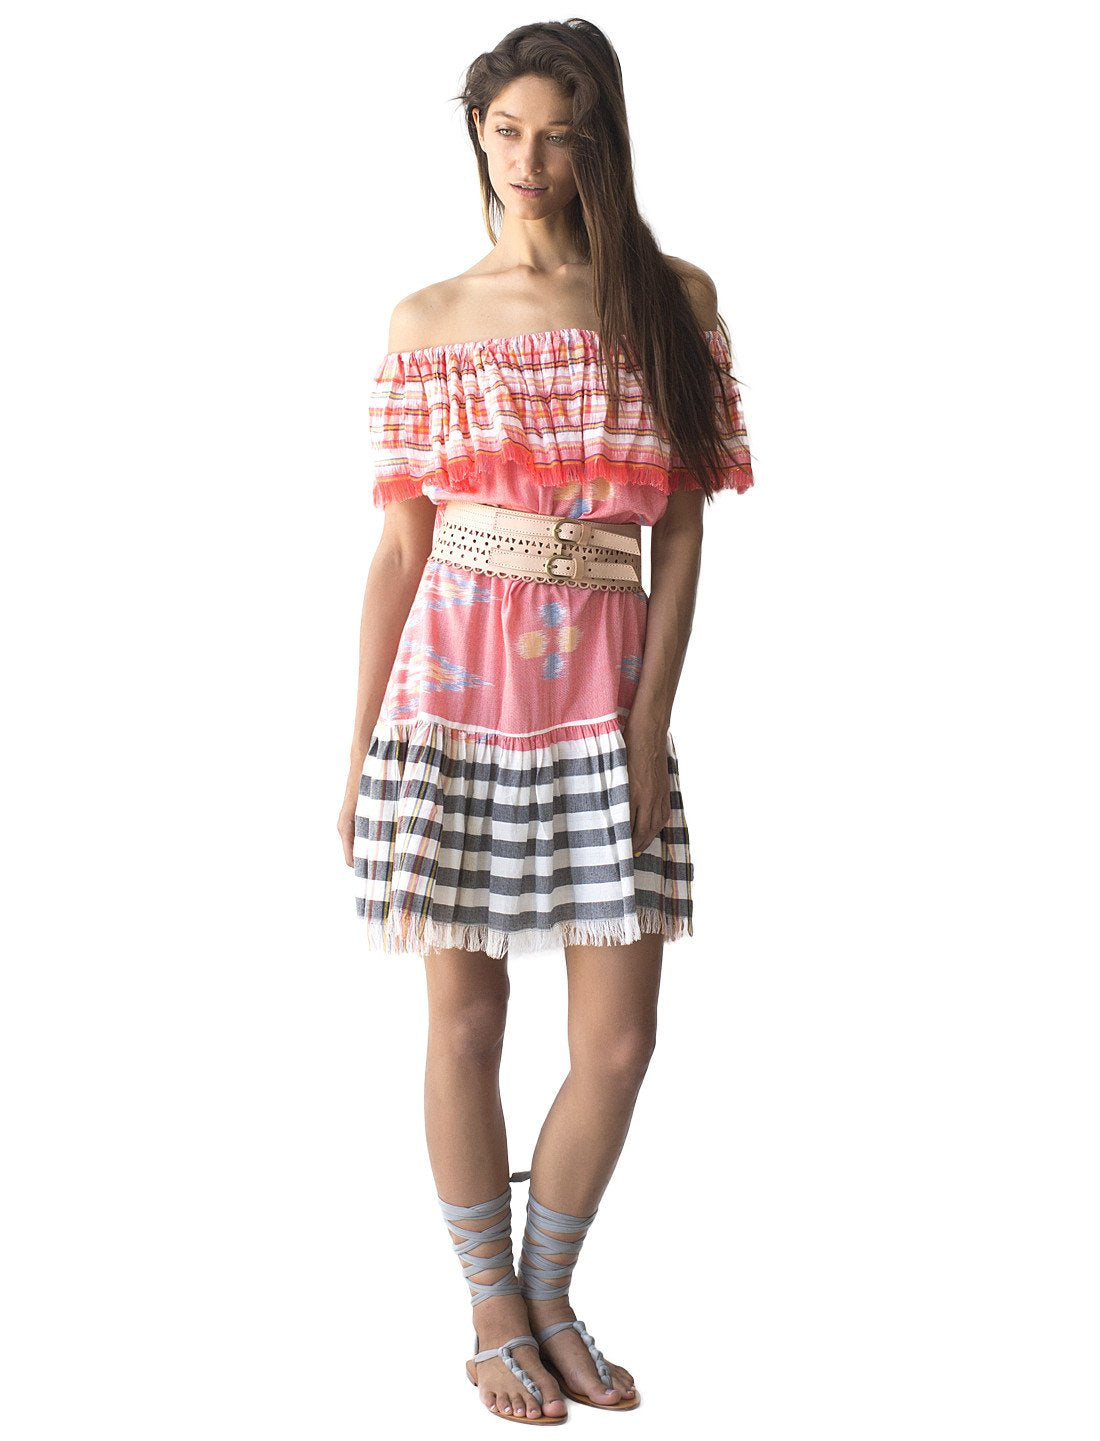 Rita Short Ikat Dress